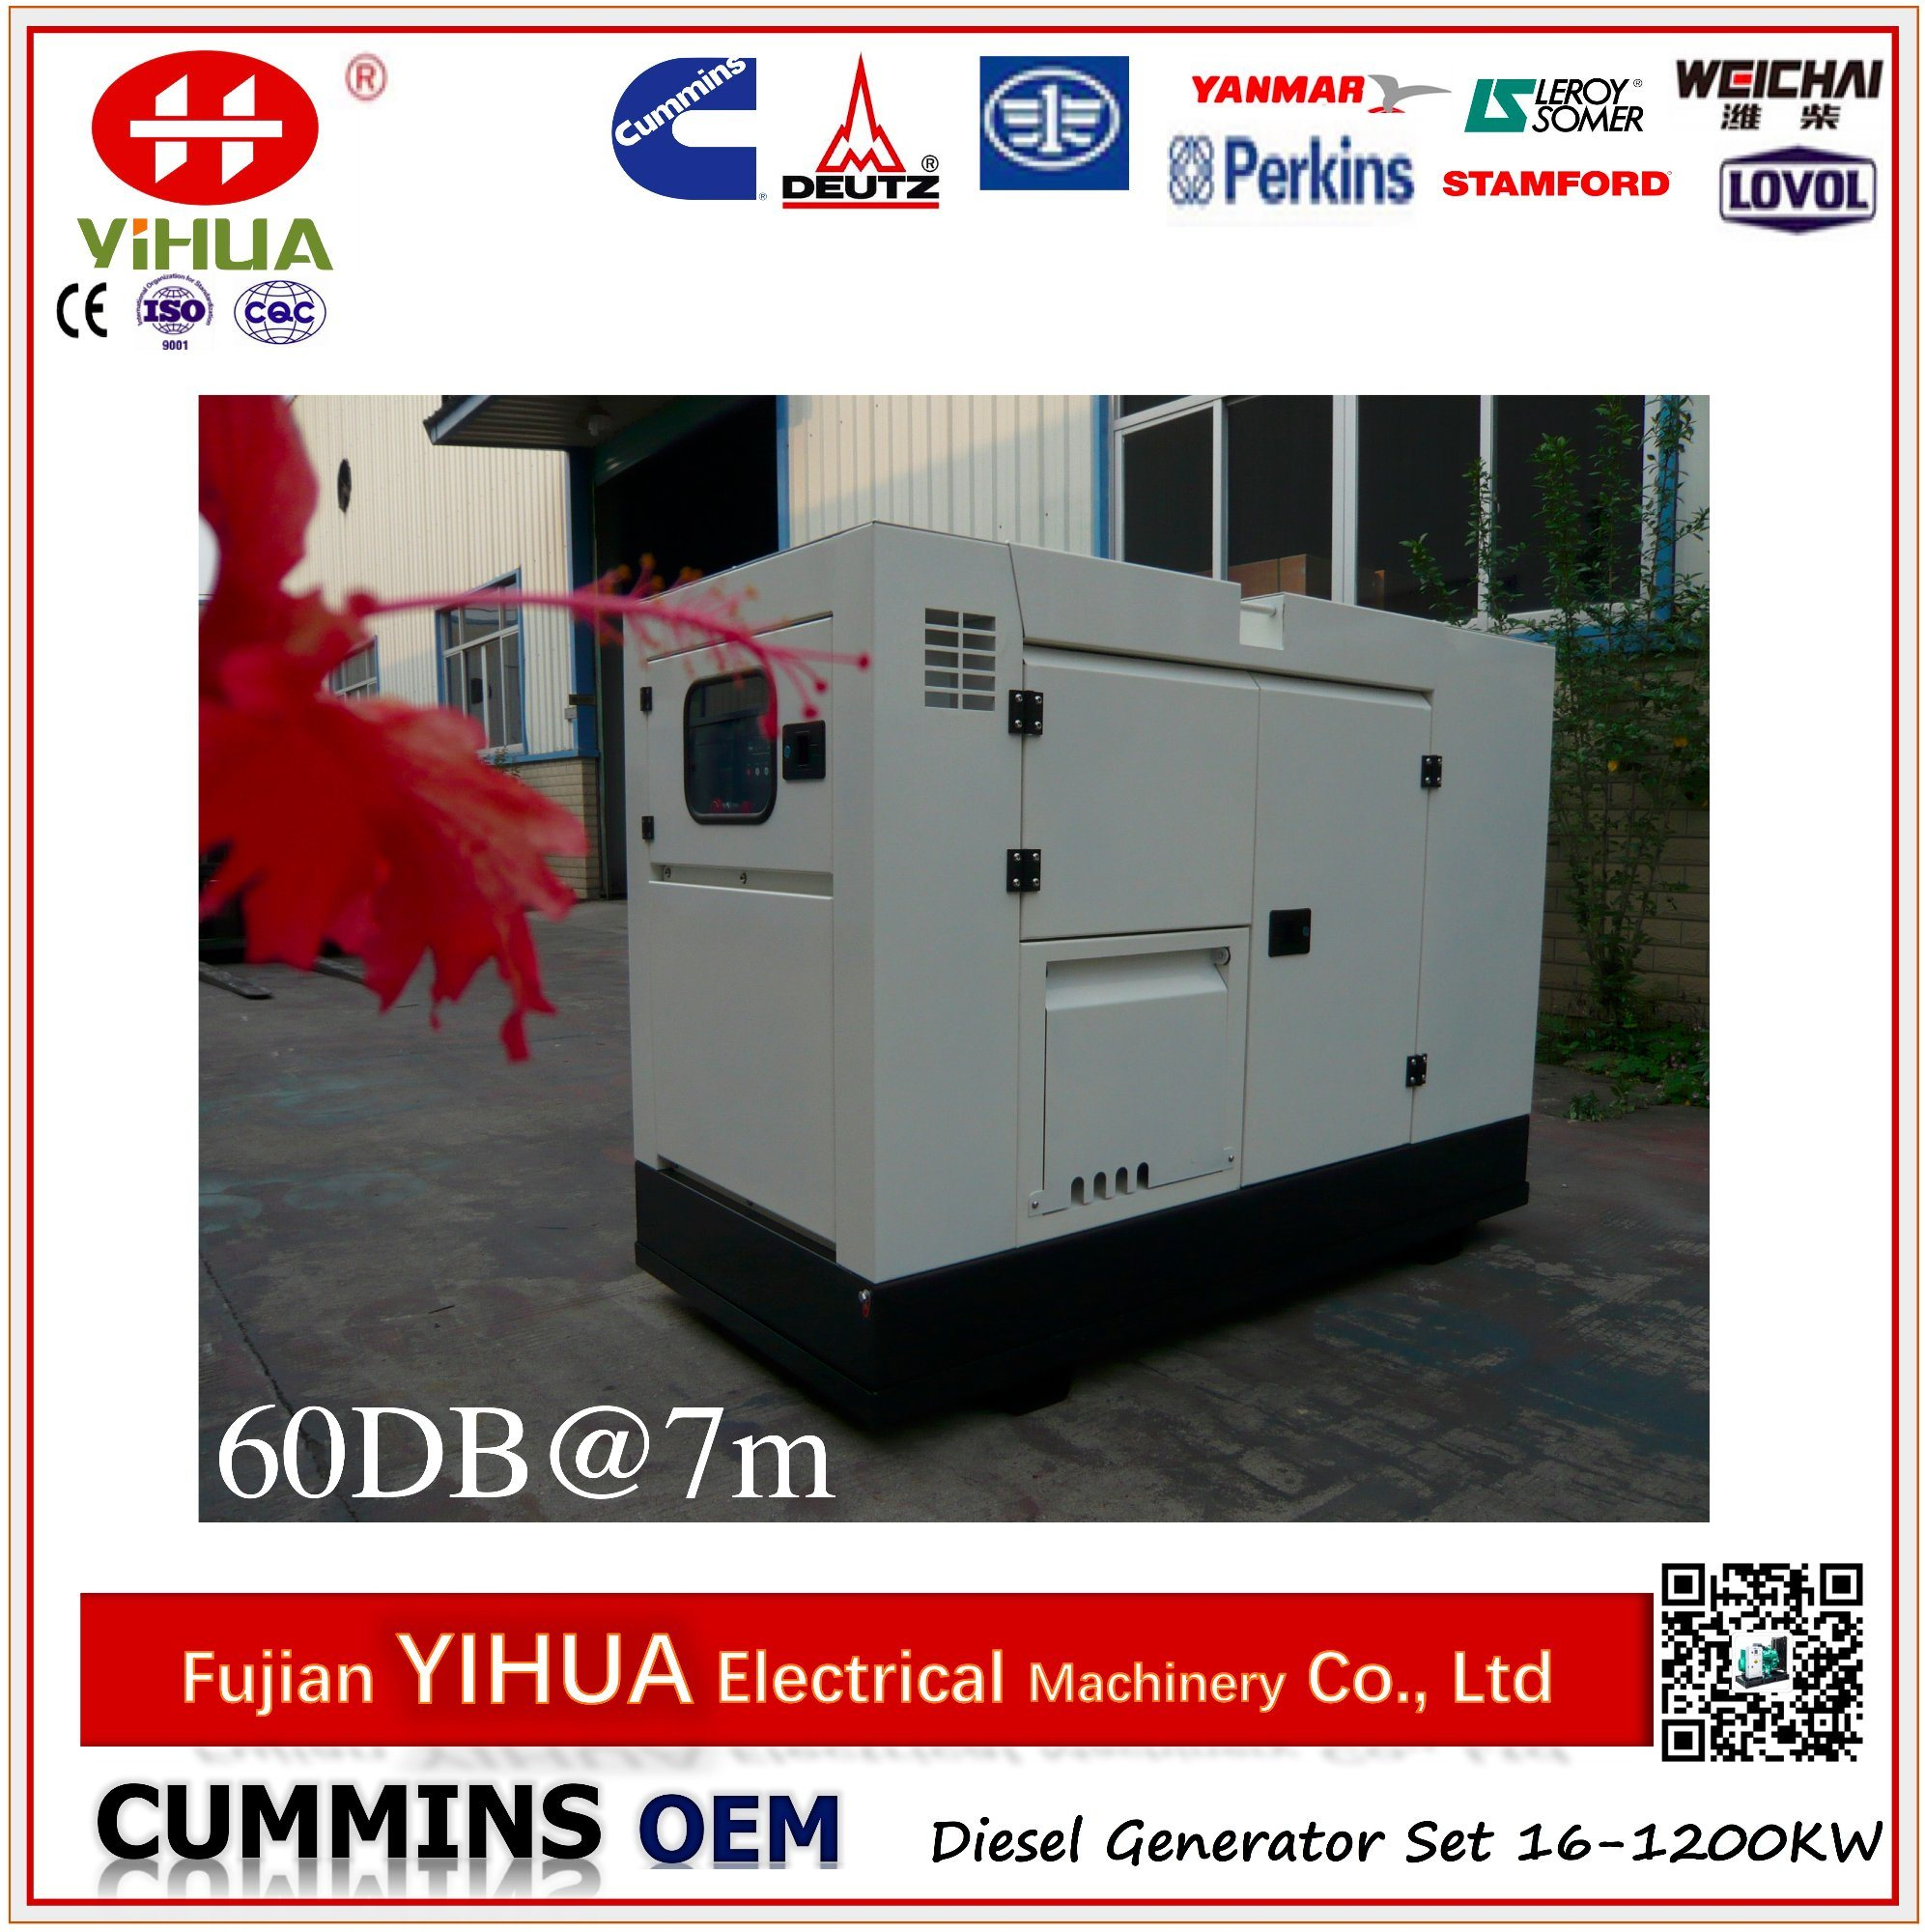 China Super Silent Cummins Power Generator Set for Home Use 16